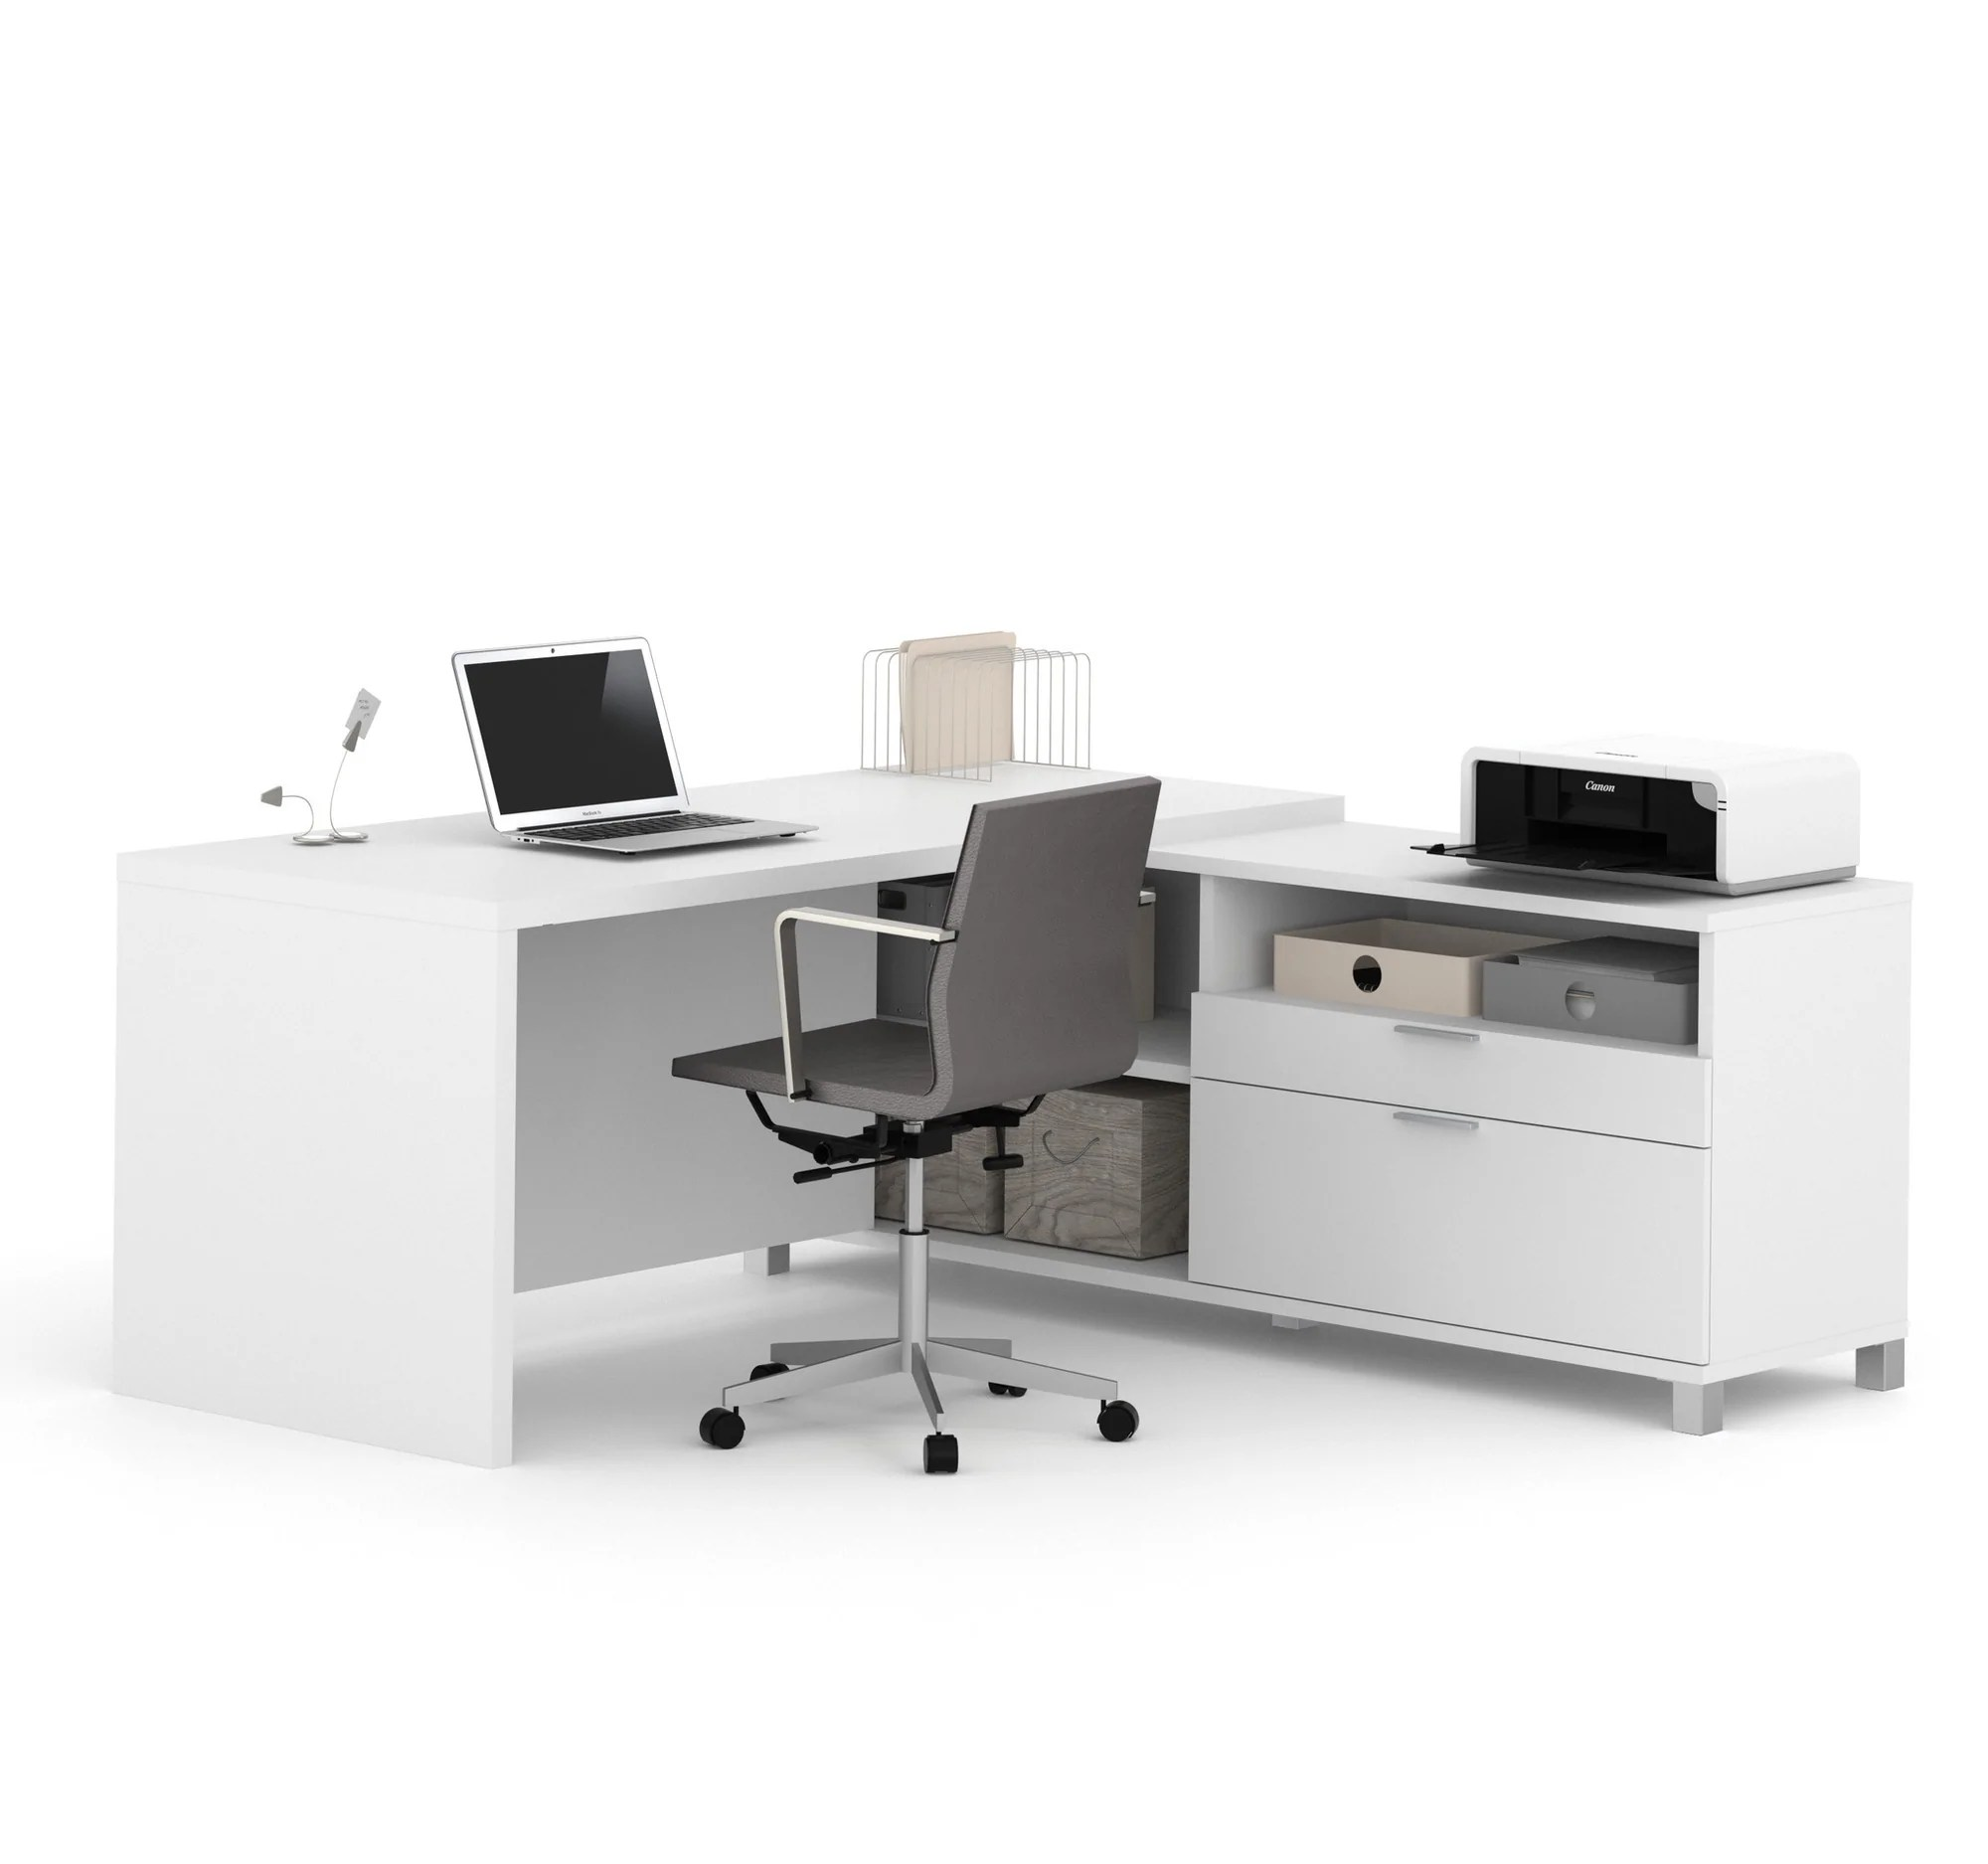 71 X 71 White L Shaped Desk With Storage By Bestar Officedesk Com